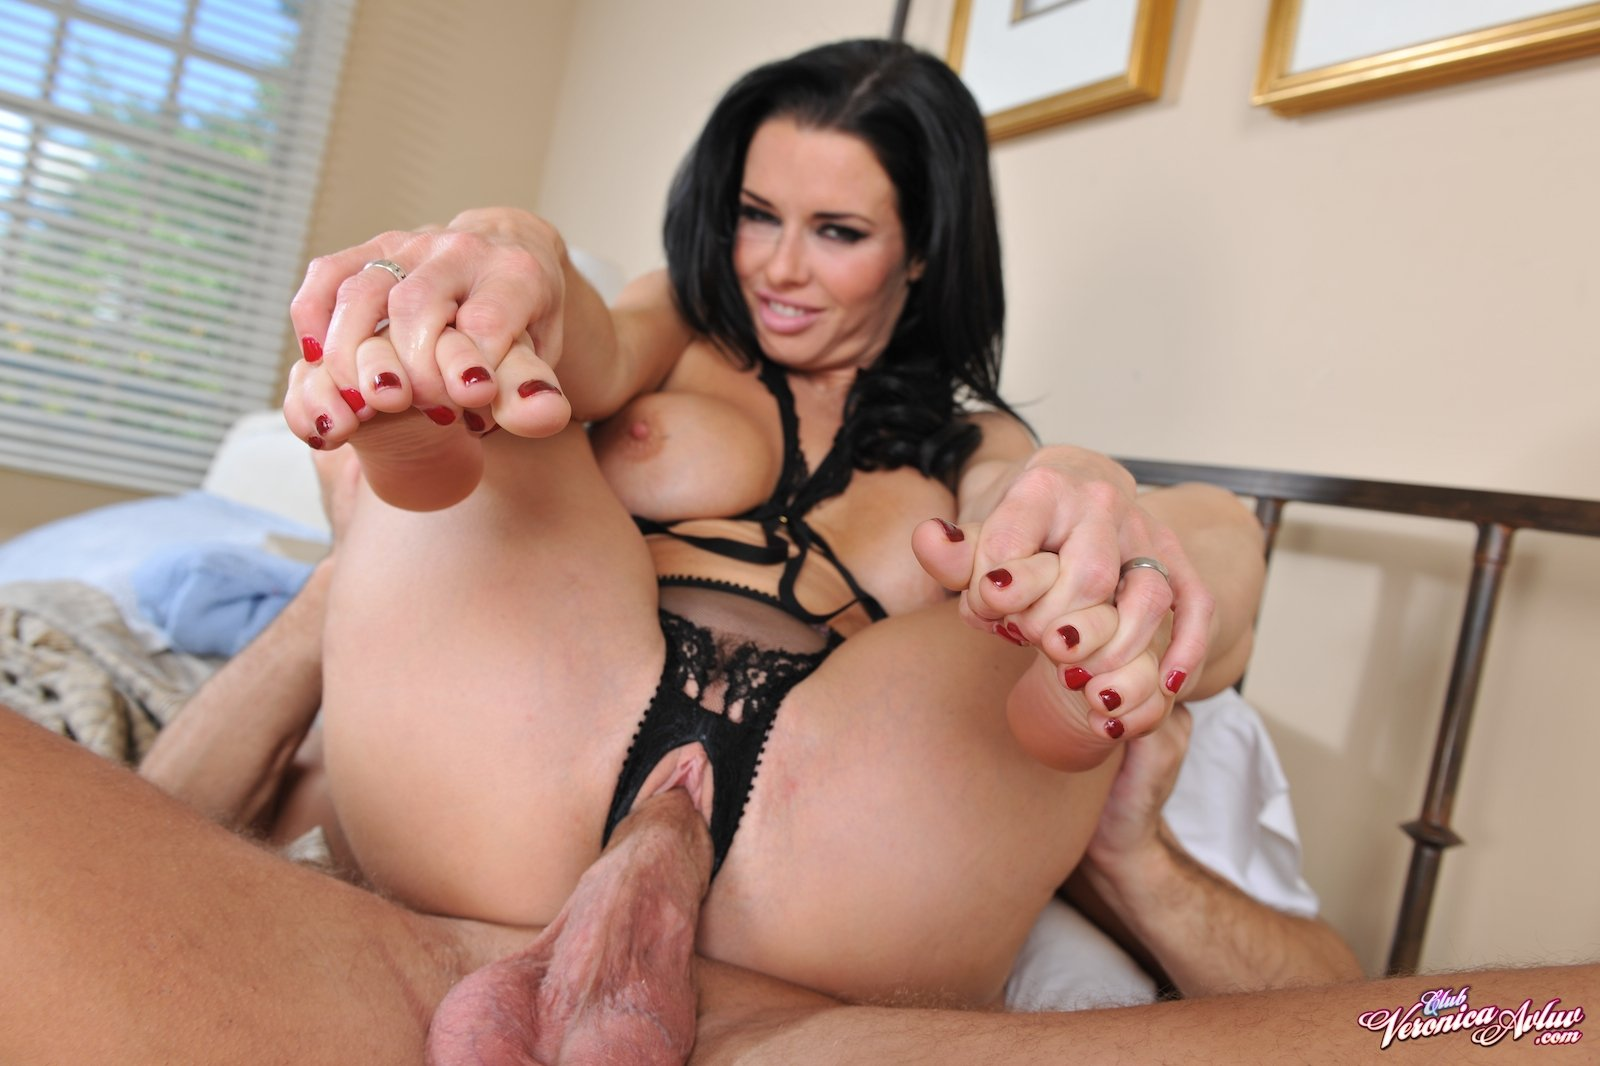 Hardcore feet sex uncle fuck bunny 8